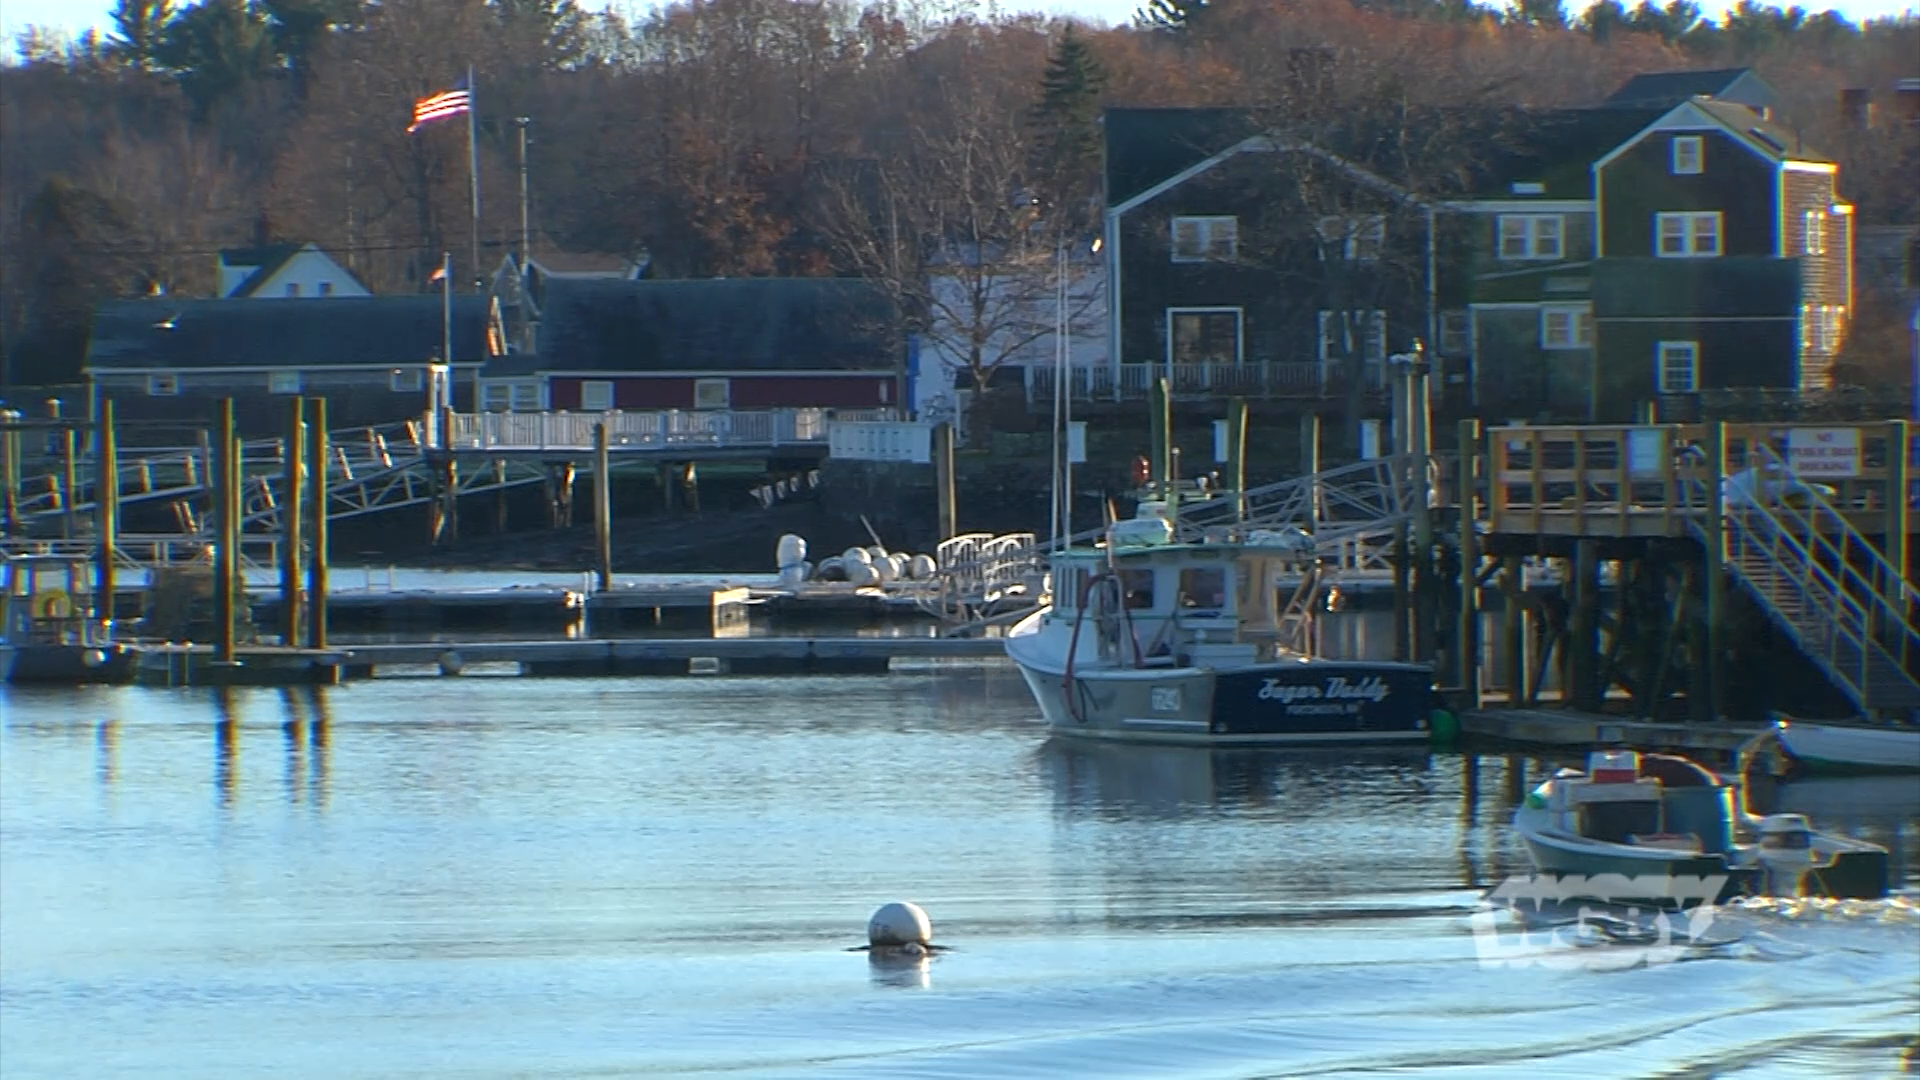 Rising and shifting tides are threatening the bustling tourism industry across New England, impacting large historic sites and tiny fishing villages alike.